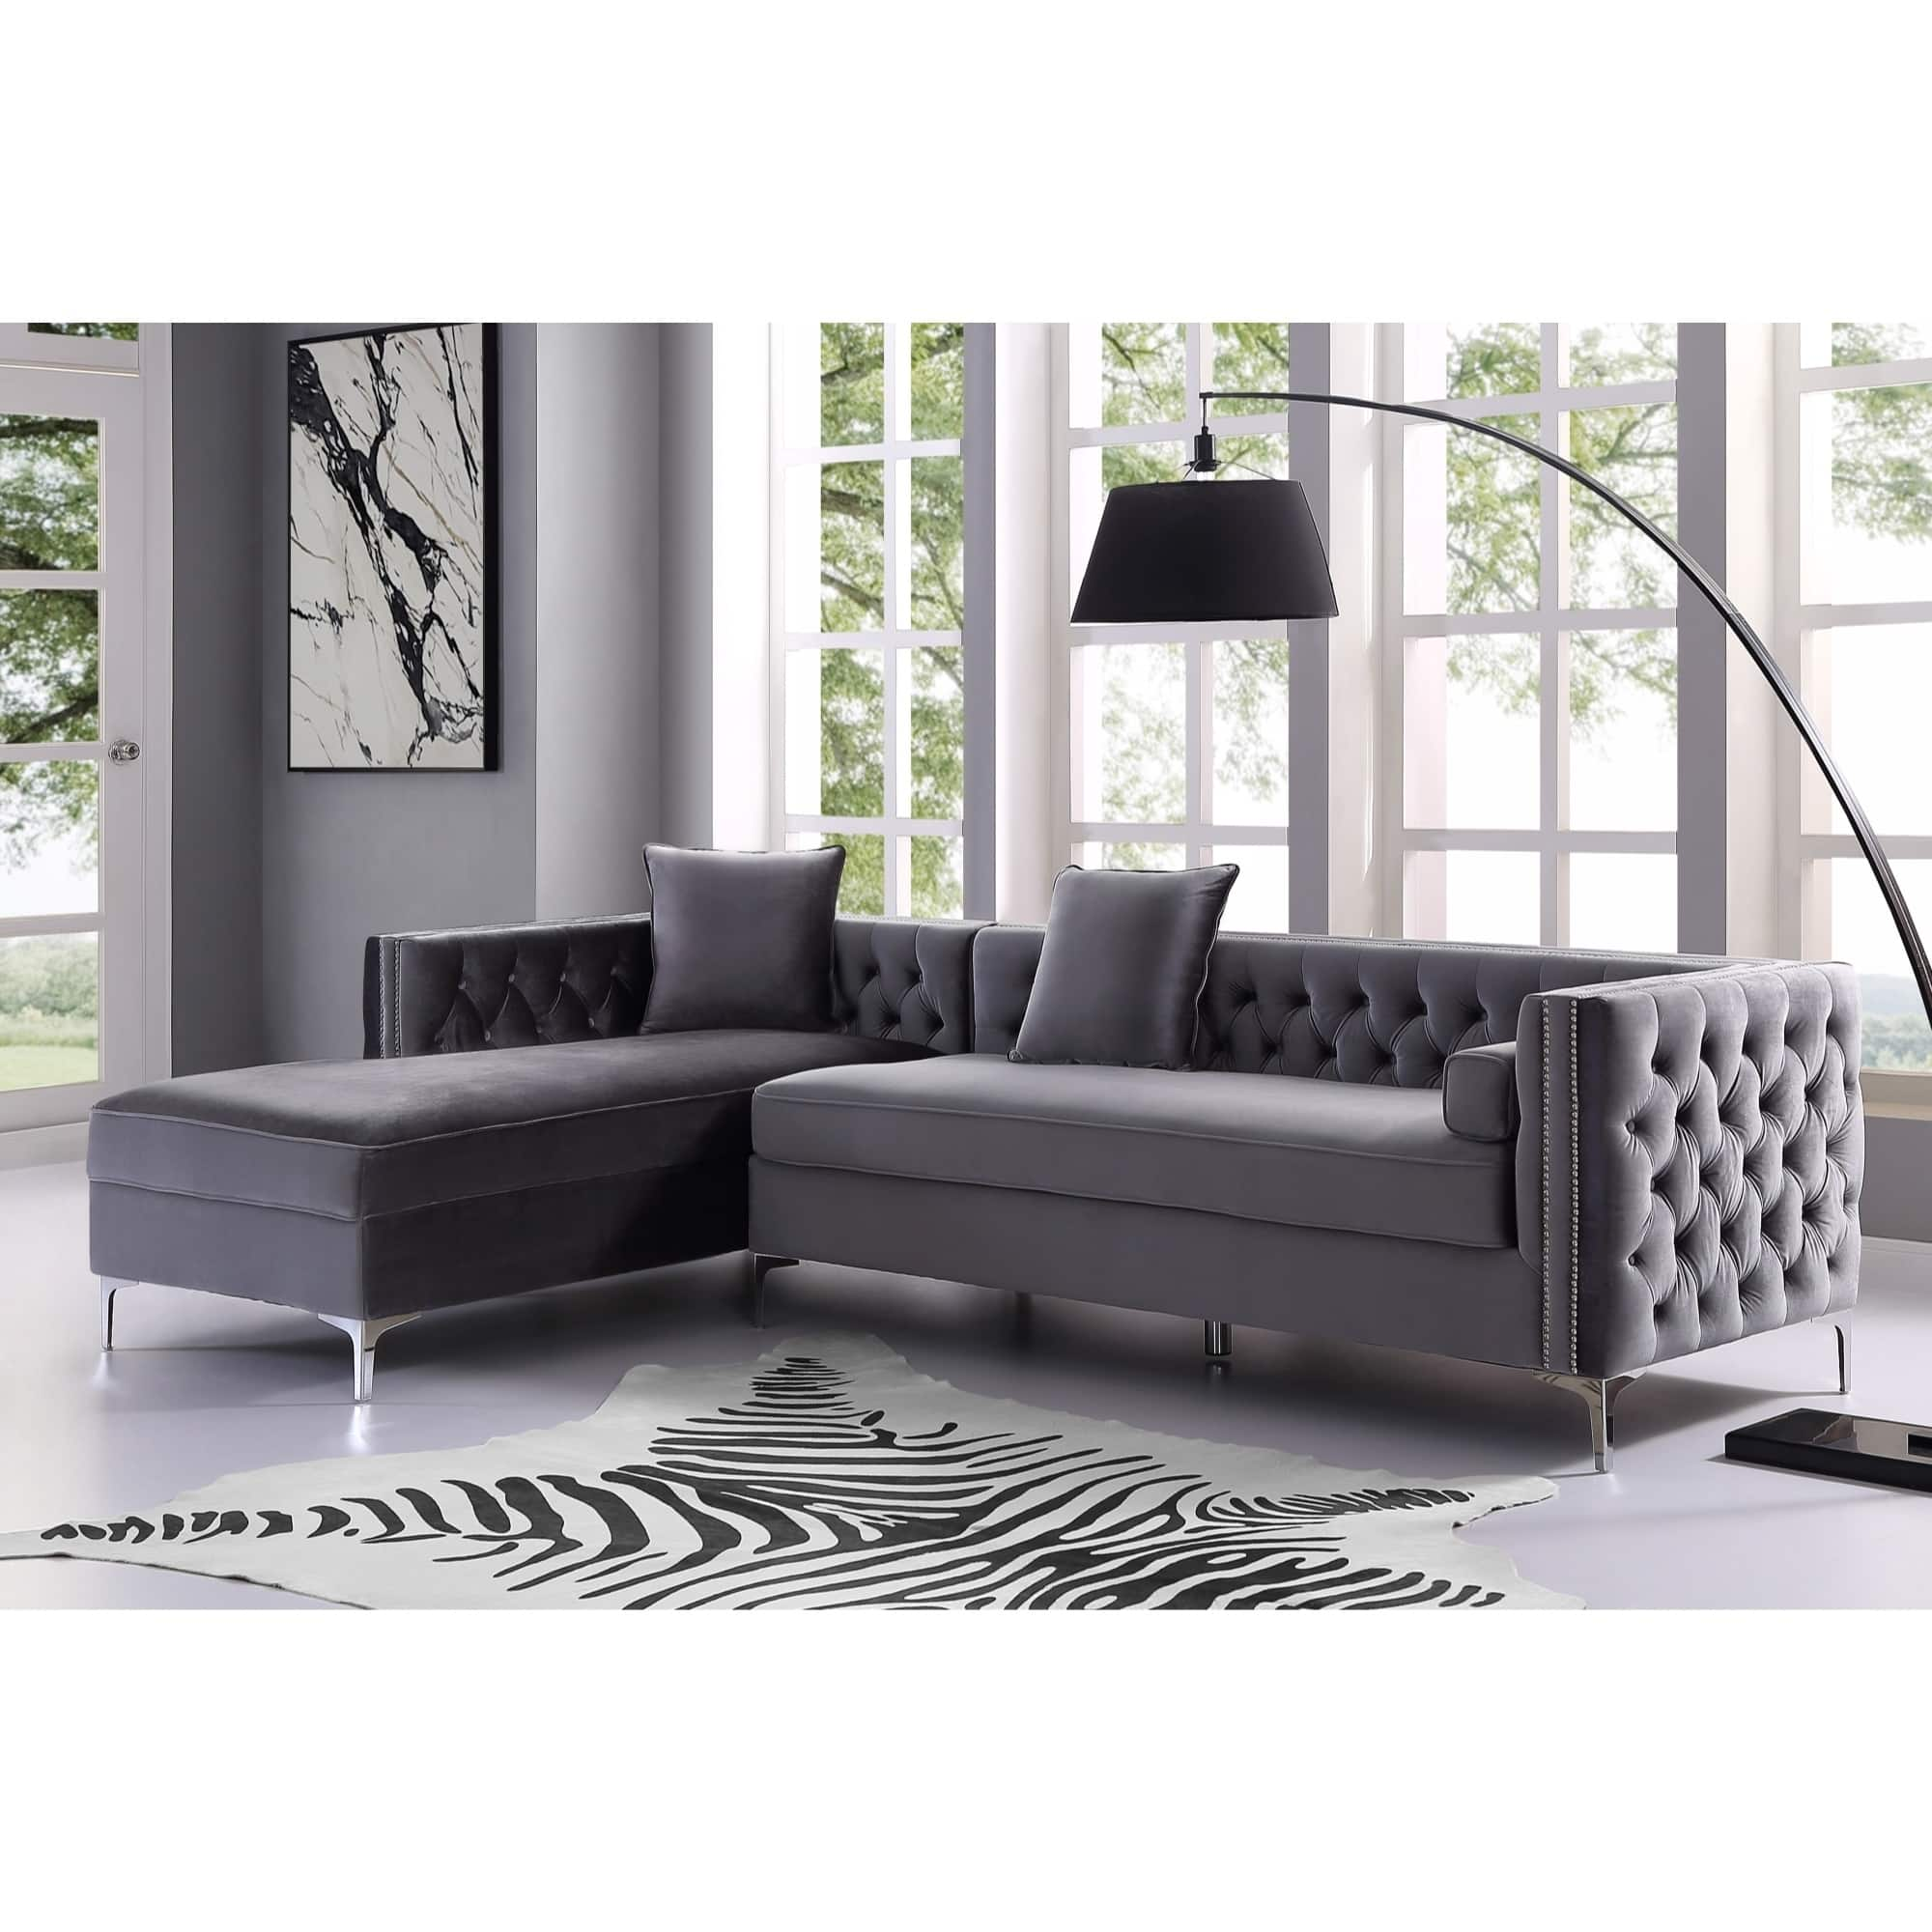 Sectional sofas for less for Button tufted chaise settee